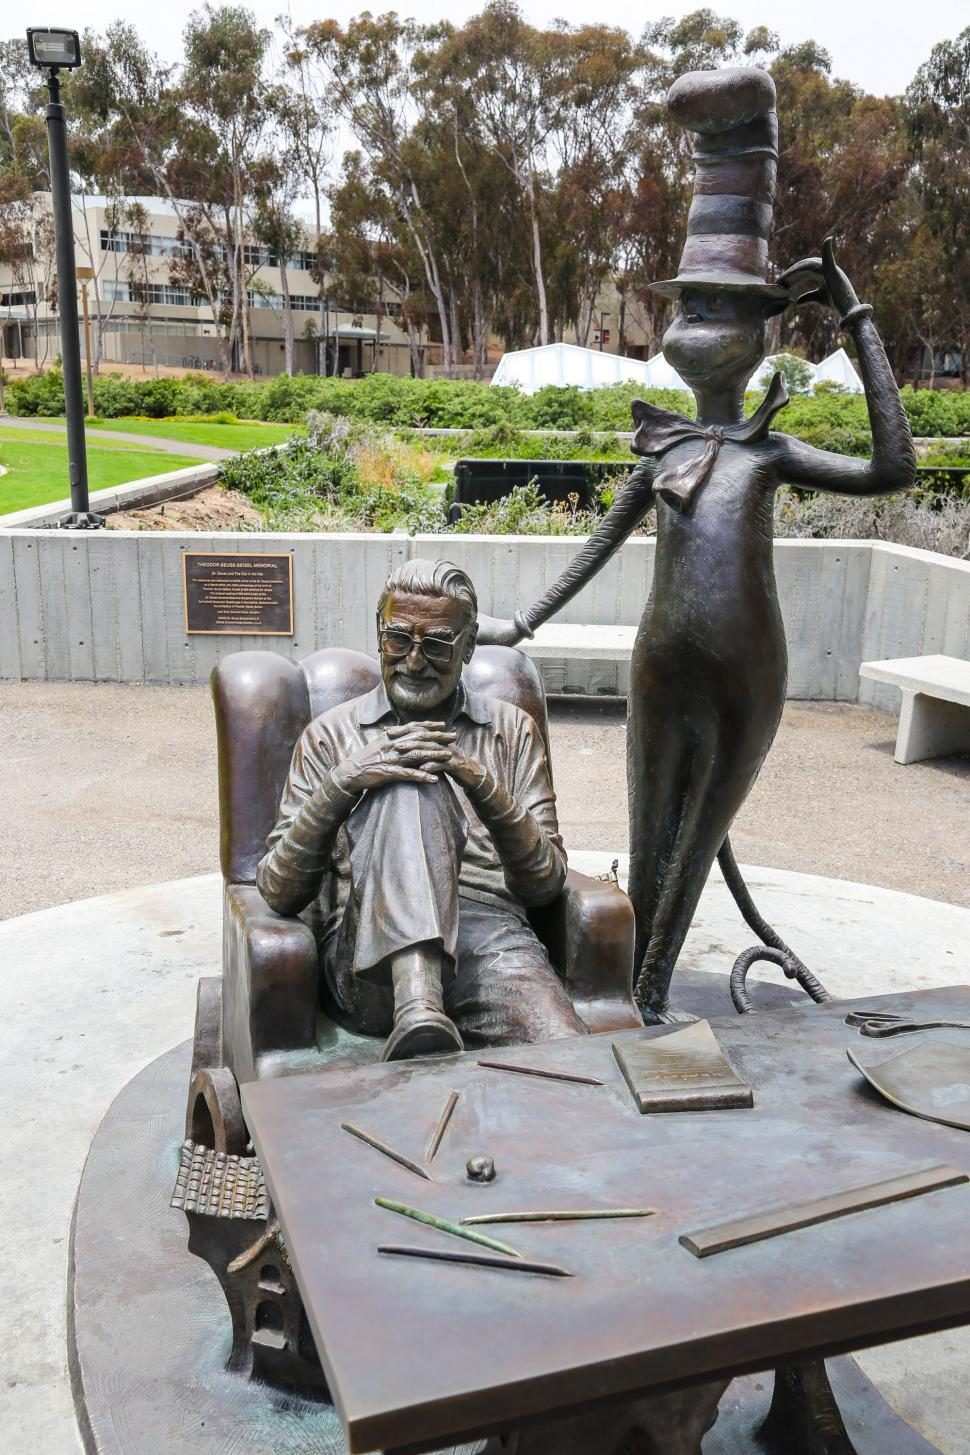 Download Free Stock Photo of Theodor Geisel memorial statue at UCSD